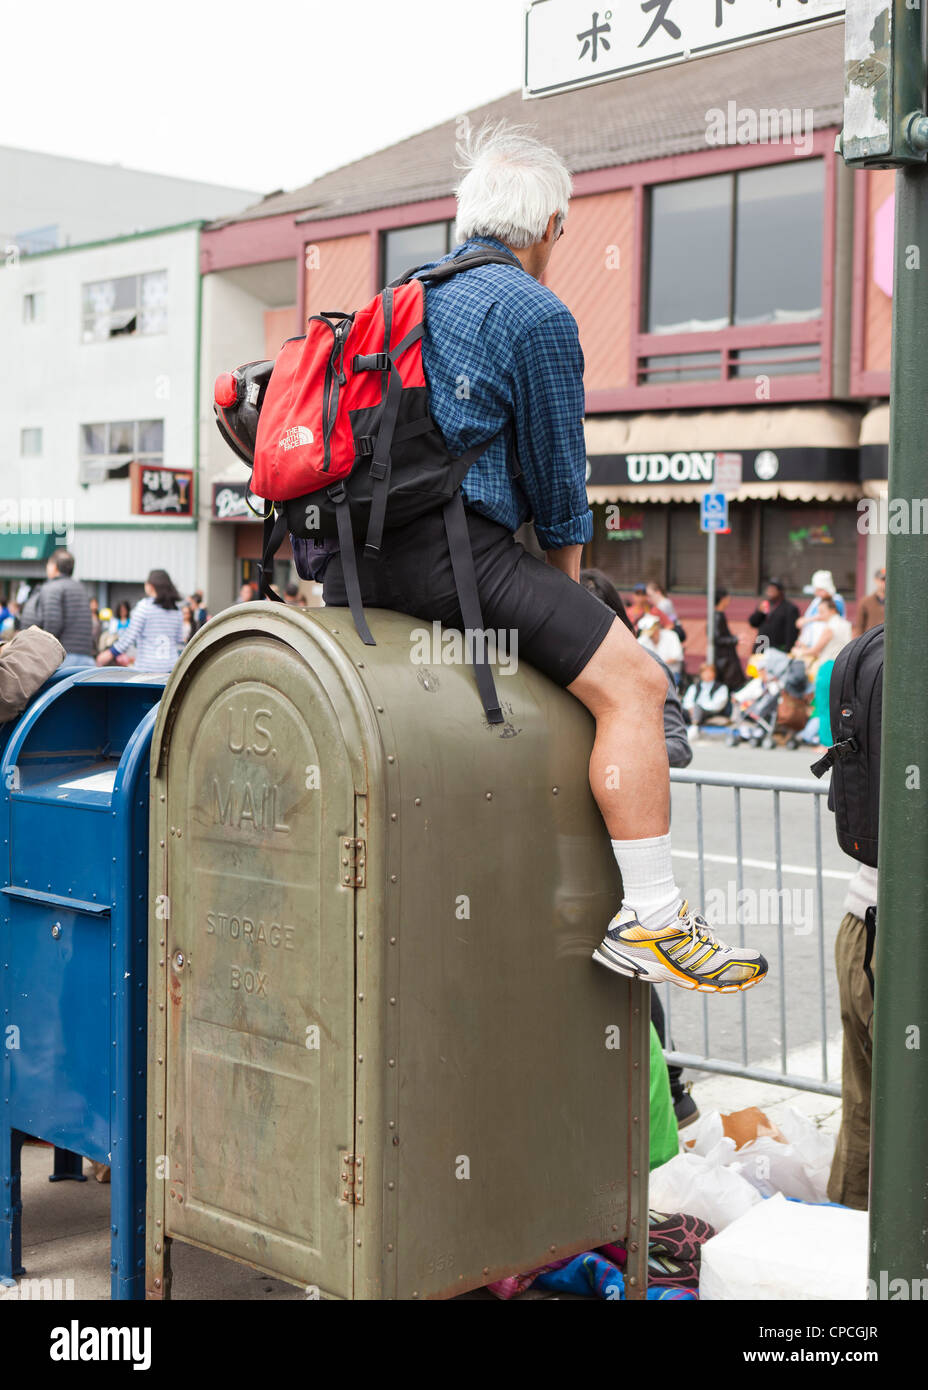 A man sitting on a mailbox - Stock Image